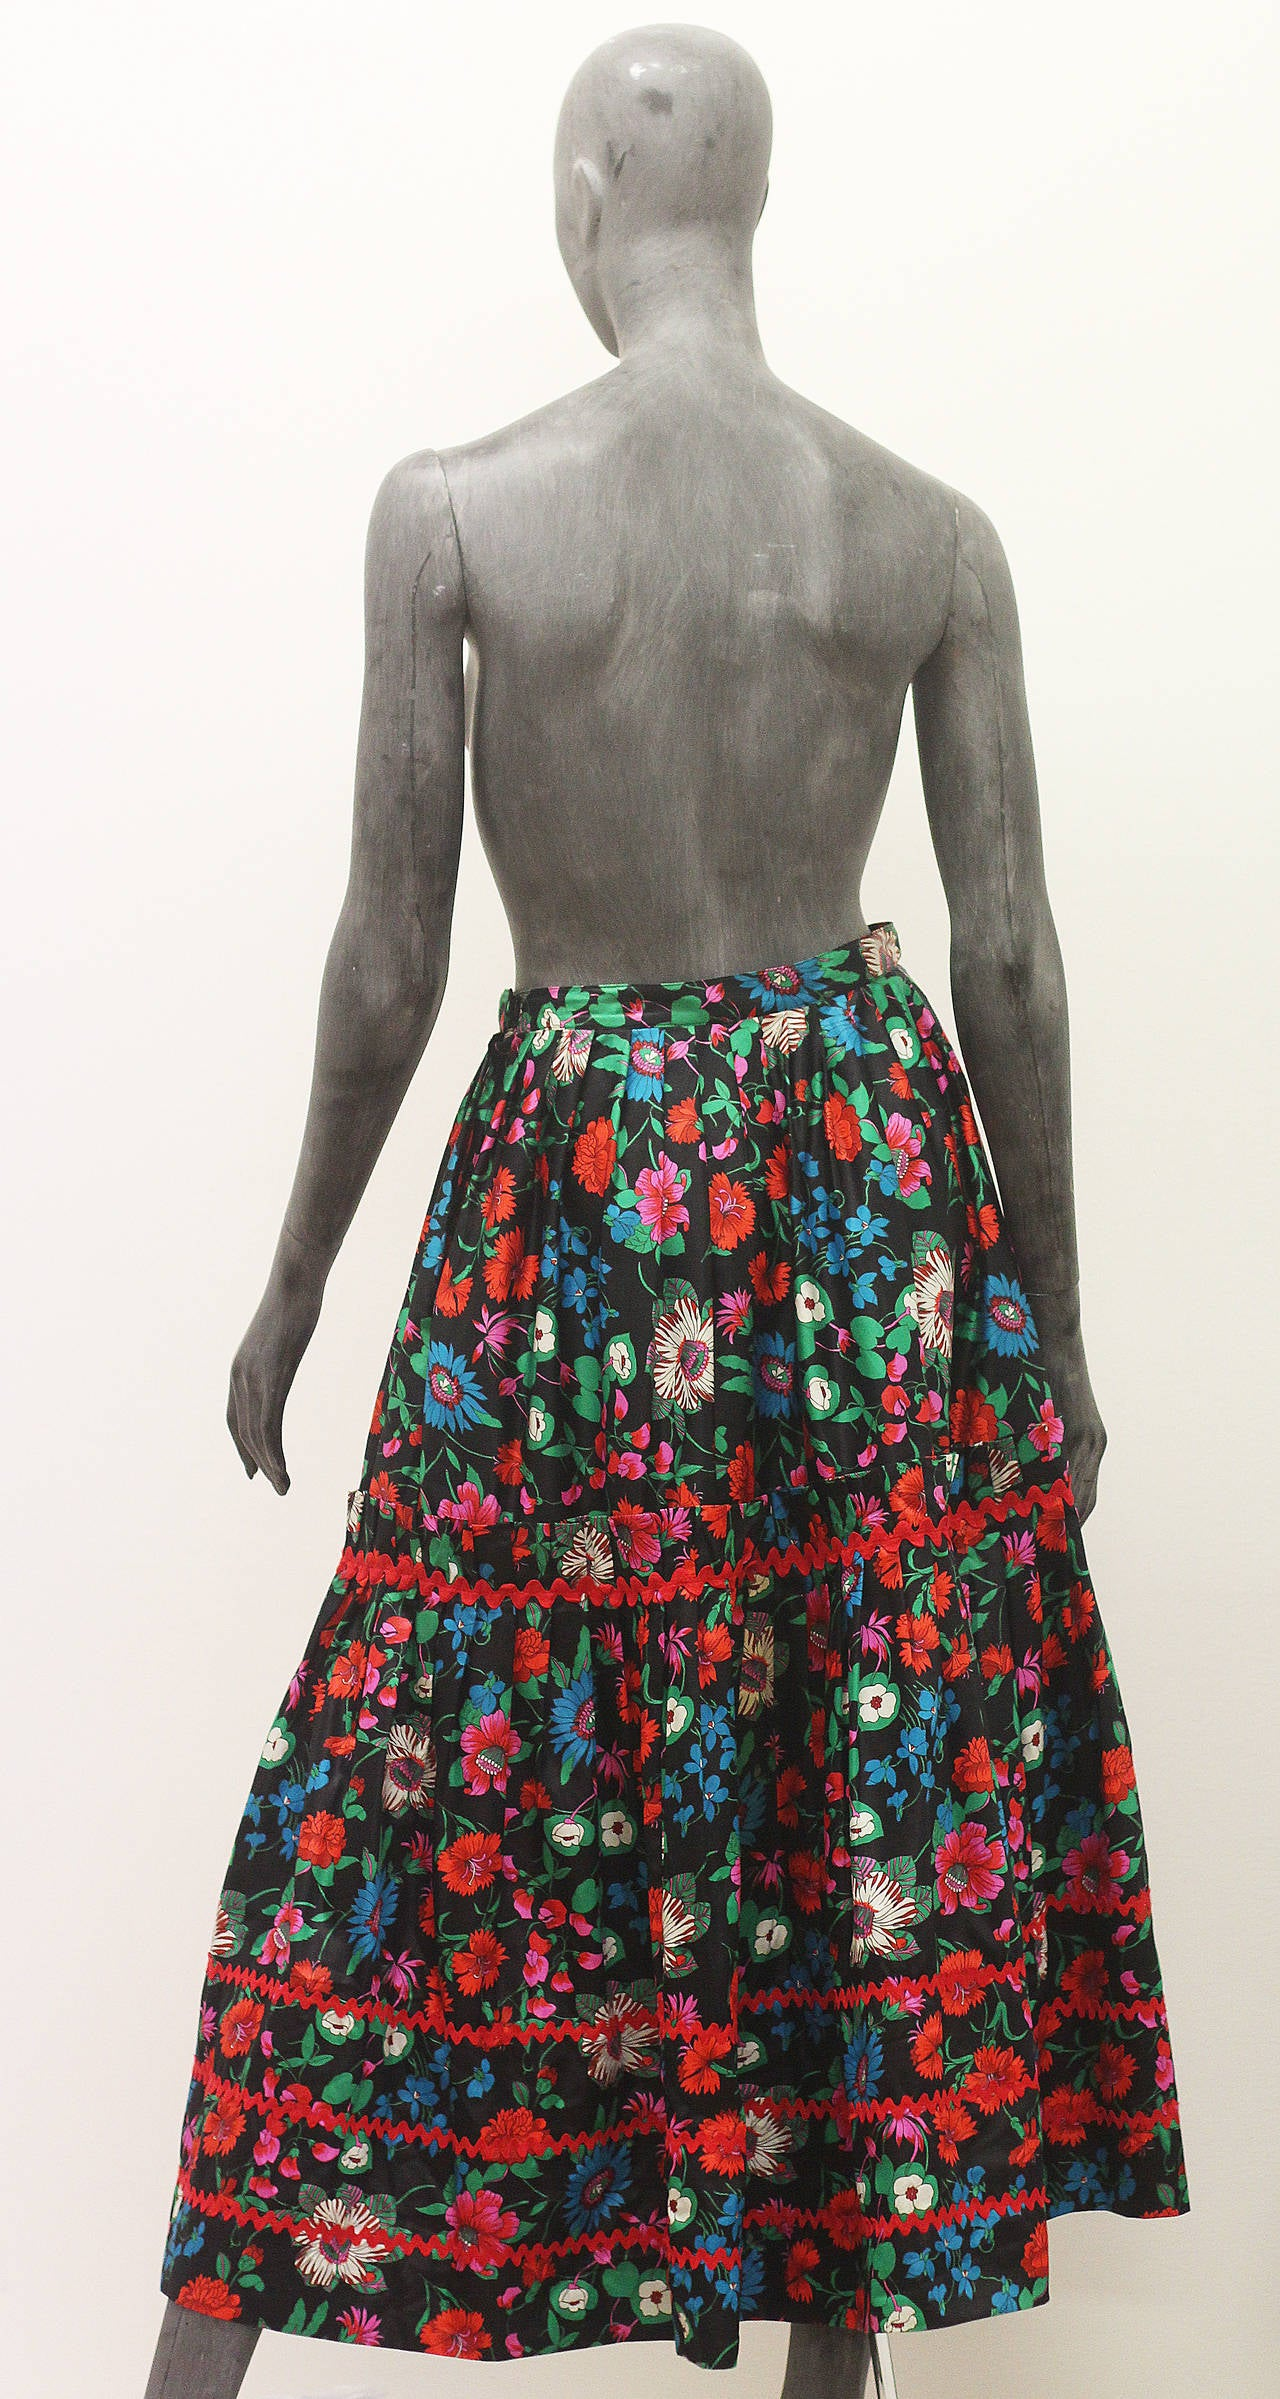 A beautiful pleated gypsy skirt by Yves Saint Laurent from the 1970s, the skirt features a vibrant floral illustrated pattern on a black ground, two side pockets and red trimming.   Waist: 28 inches - 71.12 centimetres Length: 35 inches - 88.9